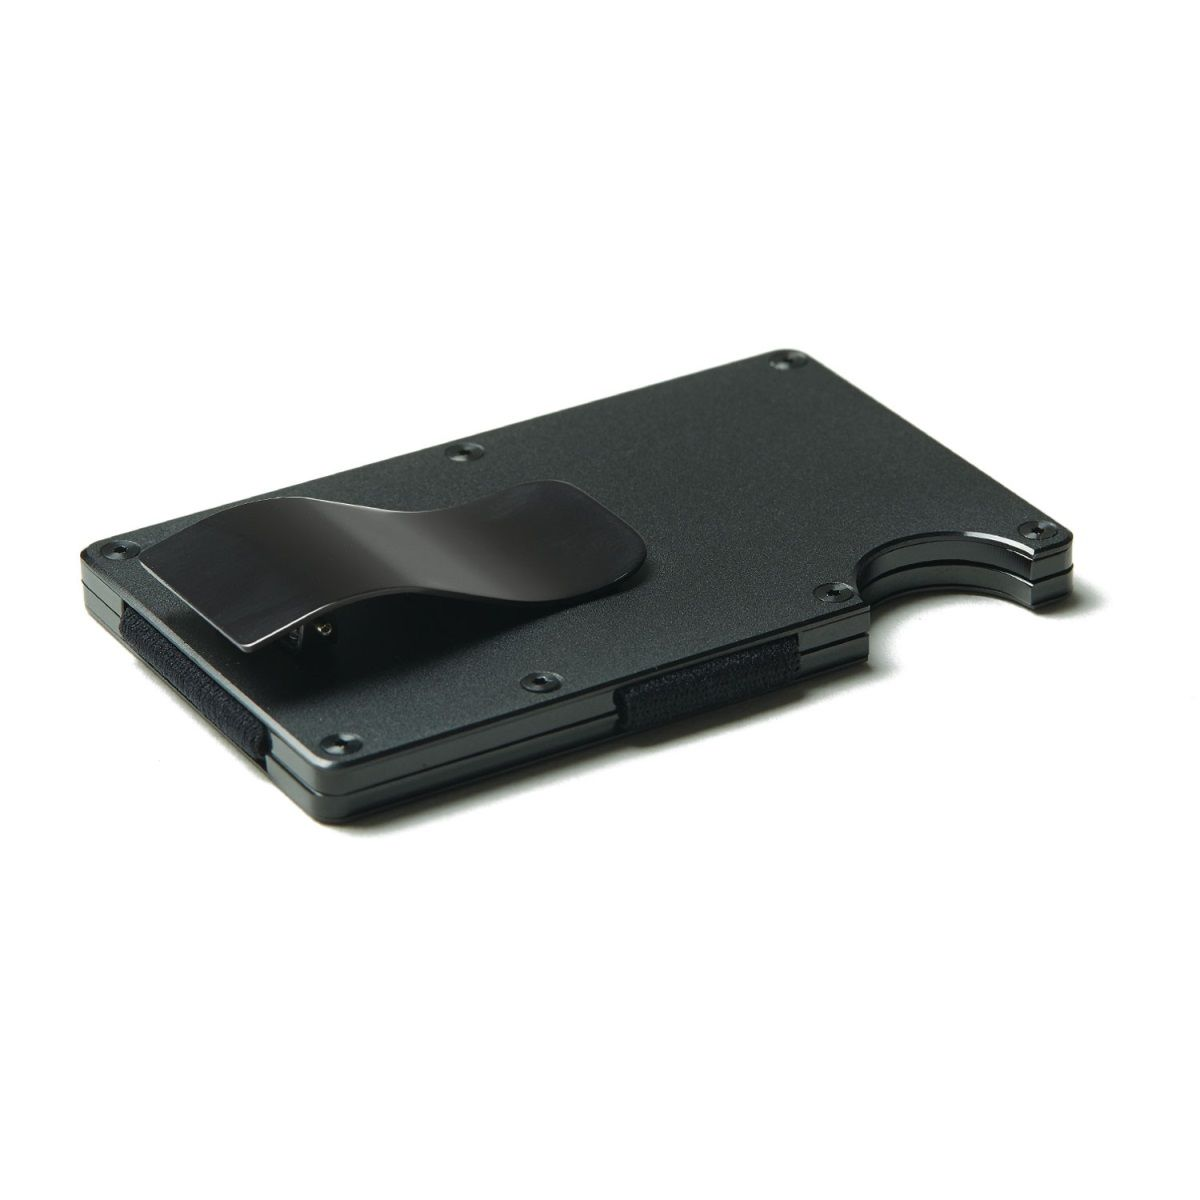 THE RIDGE Aluminum Wallet With Money Clip - Black